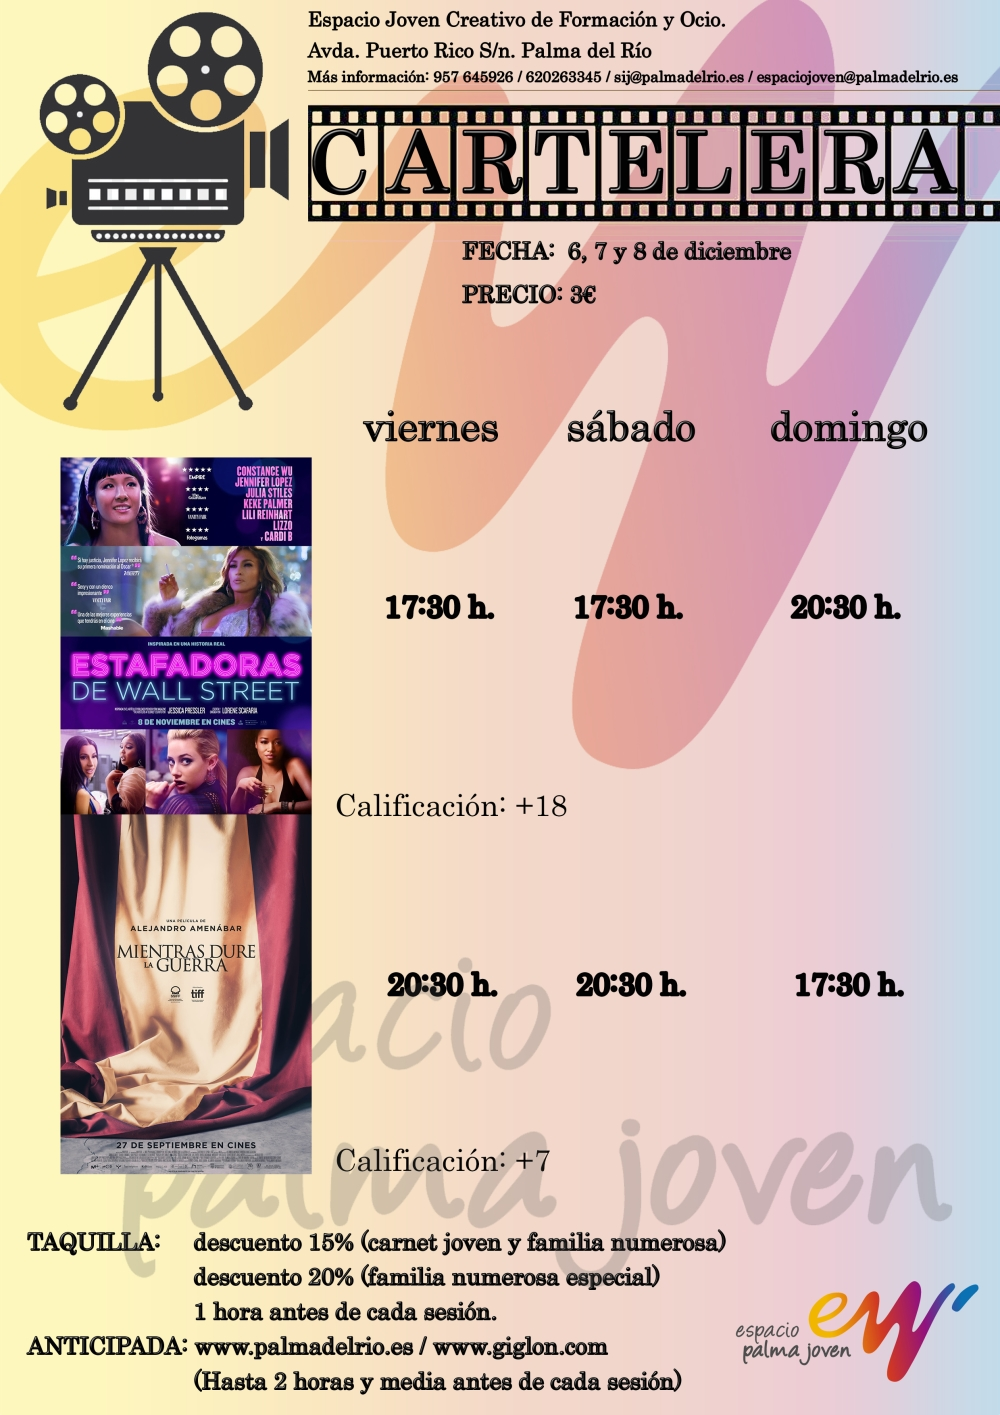 https://www.palmadelrio.es/sites/default/files/horario_cine_6_7_y_8_dic.jpg